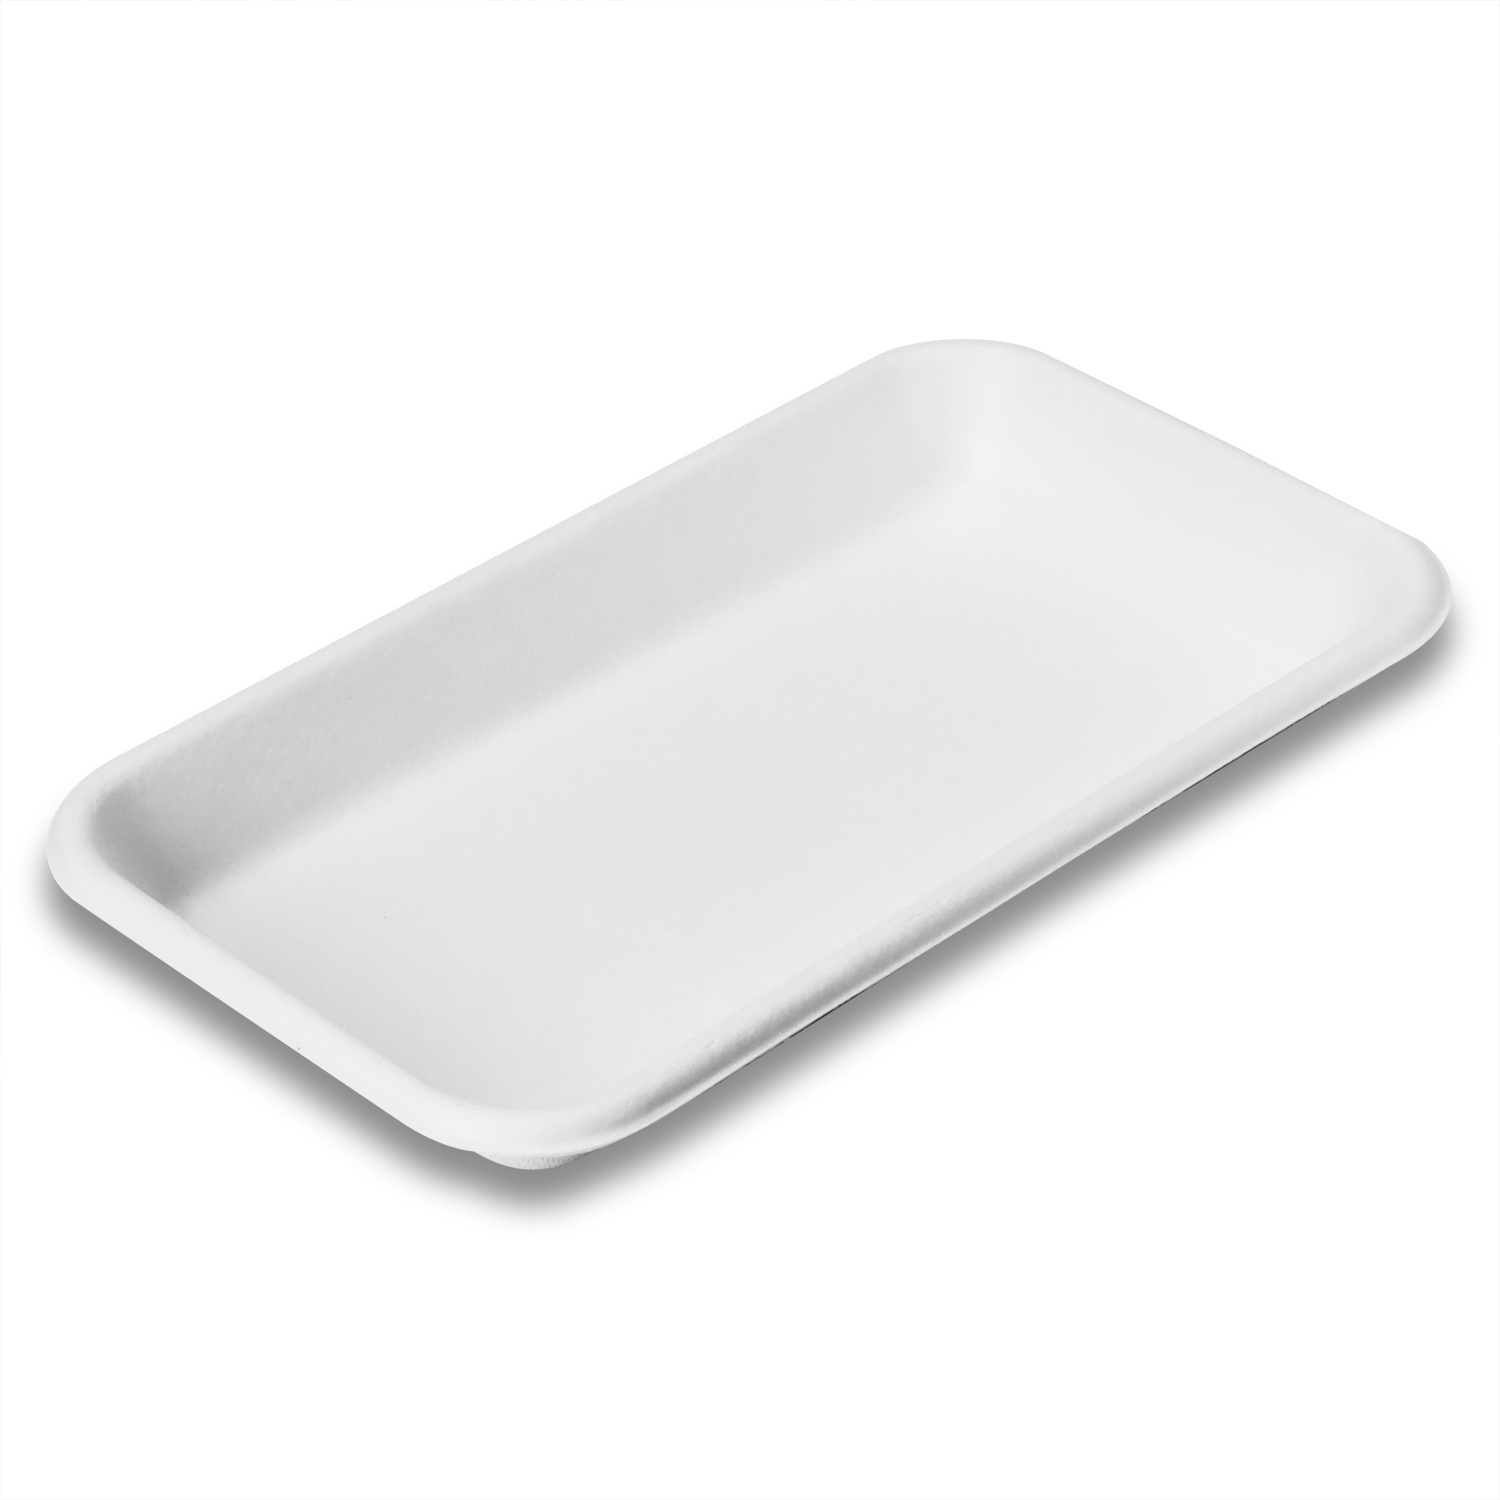 OK COMPOST HOME Hot Selling Disposable Biodegradable Bagasse Pulp Fresh Food Trays